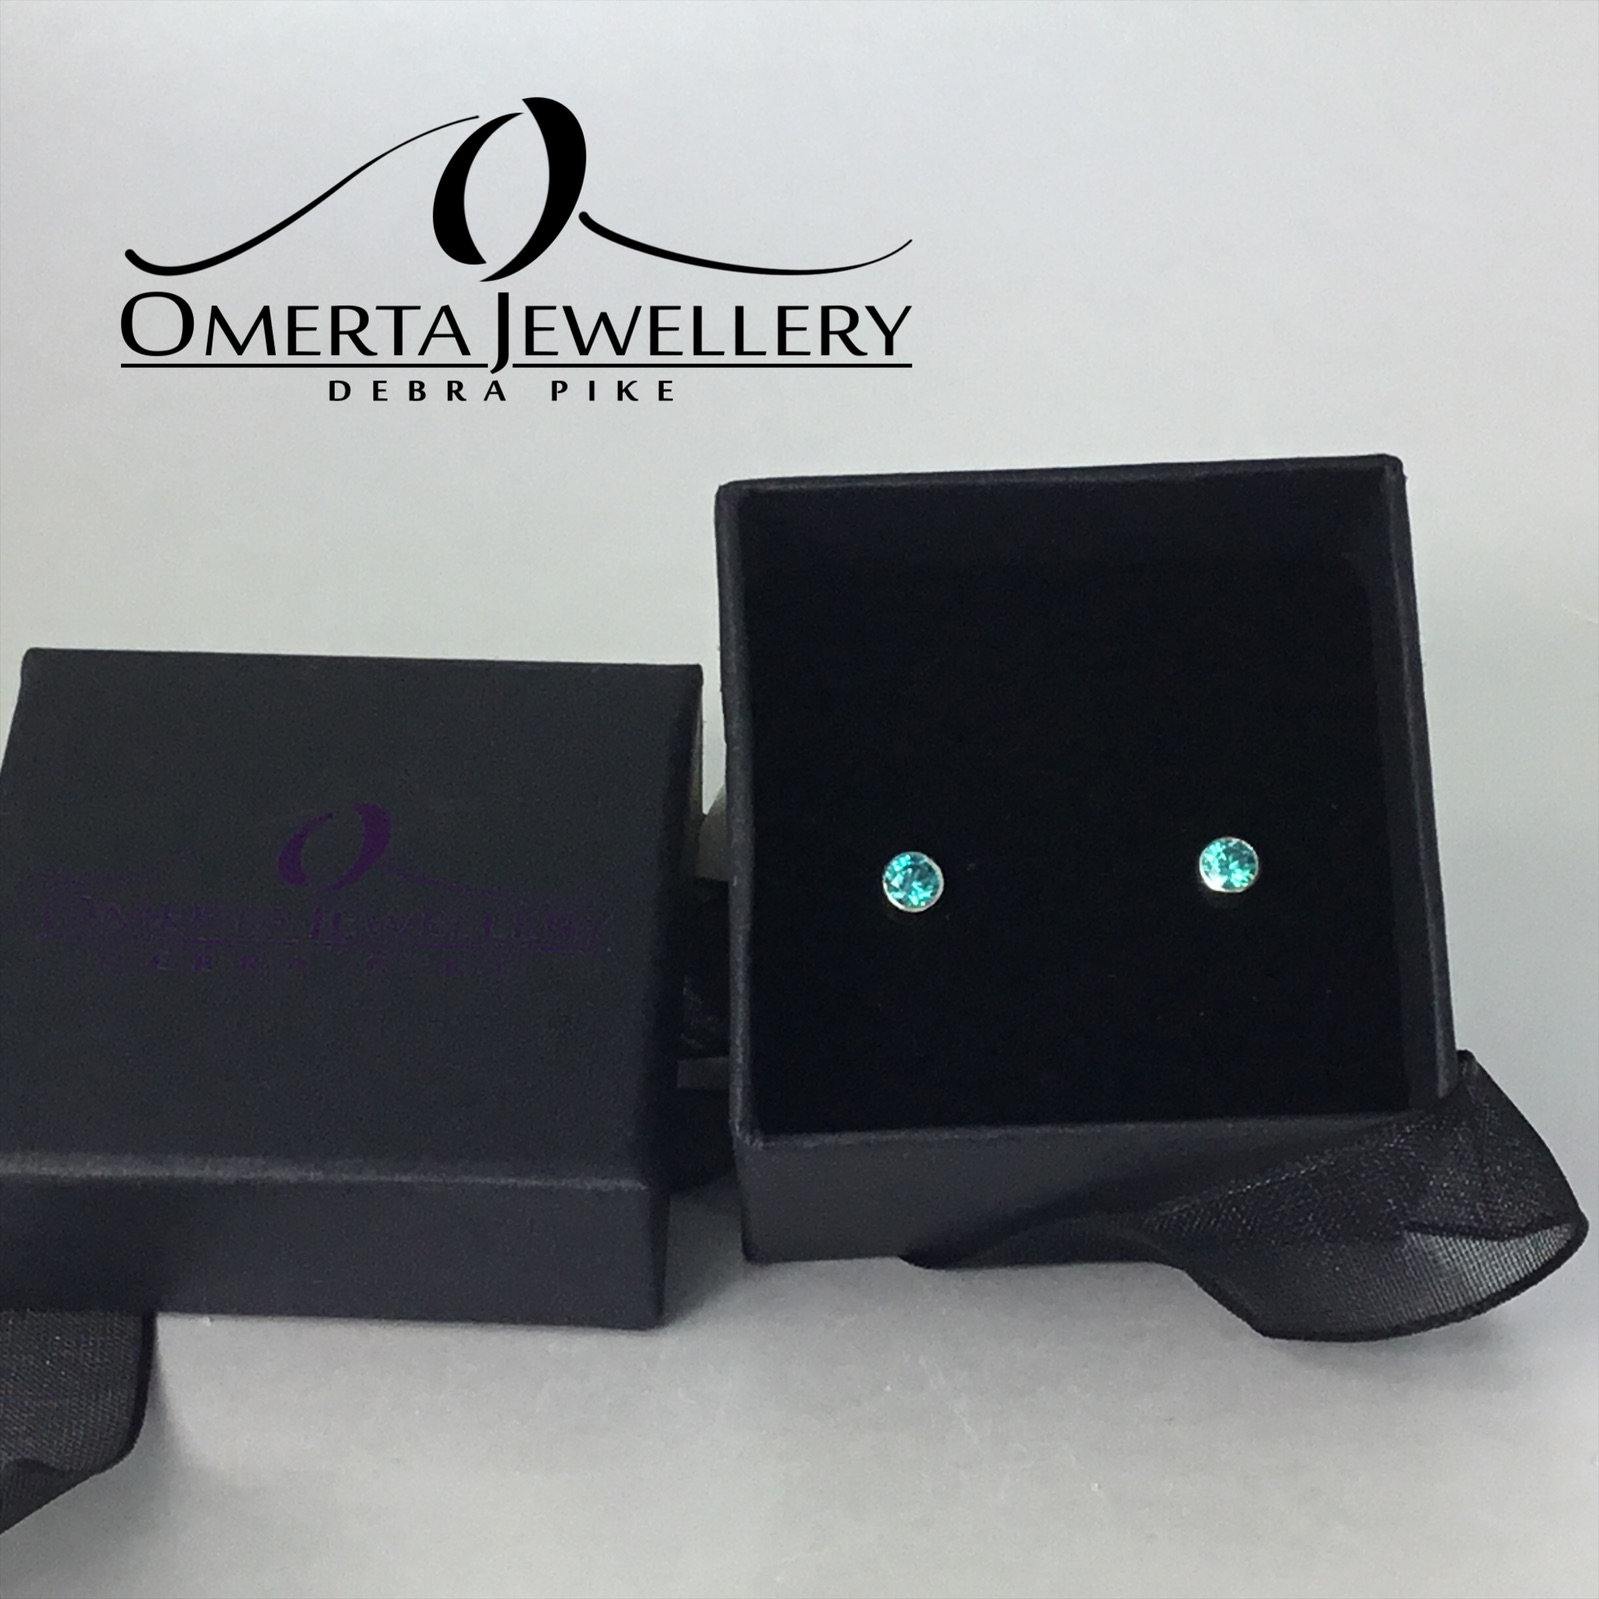 Sterling Silver & Swarovski Zirconia Stud Earrings